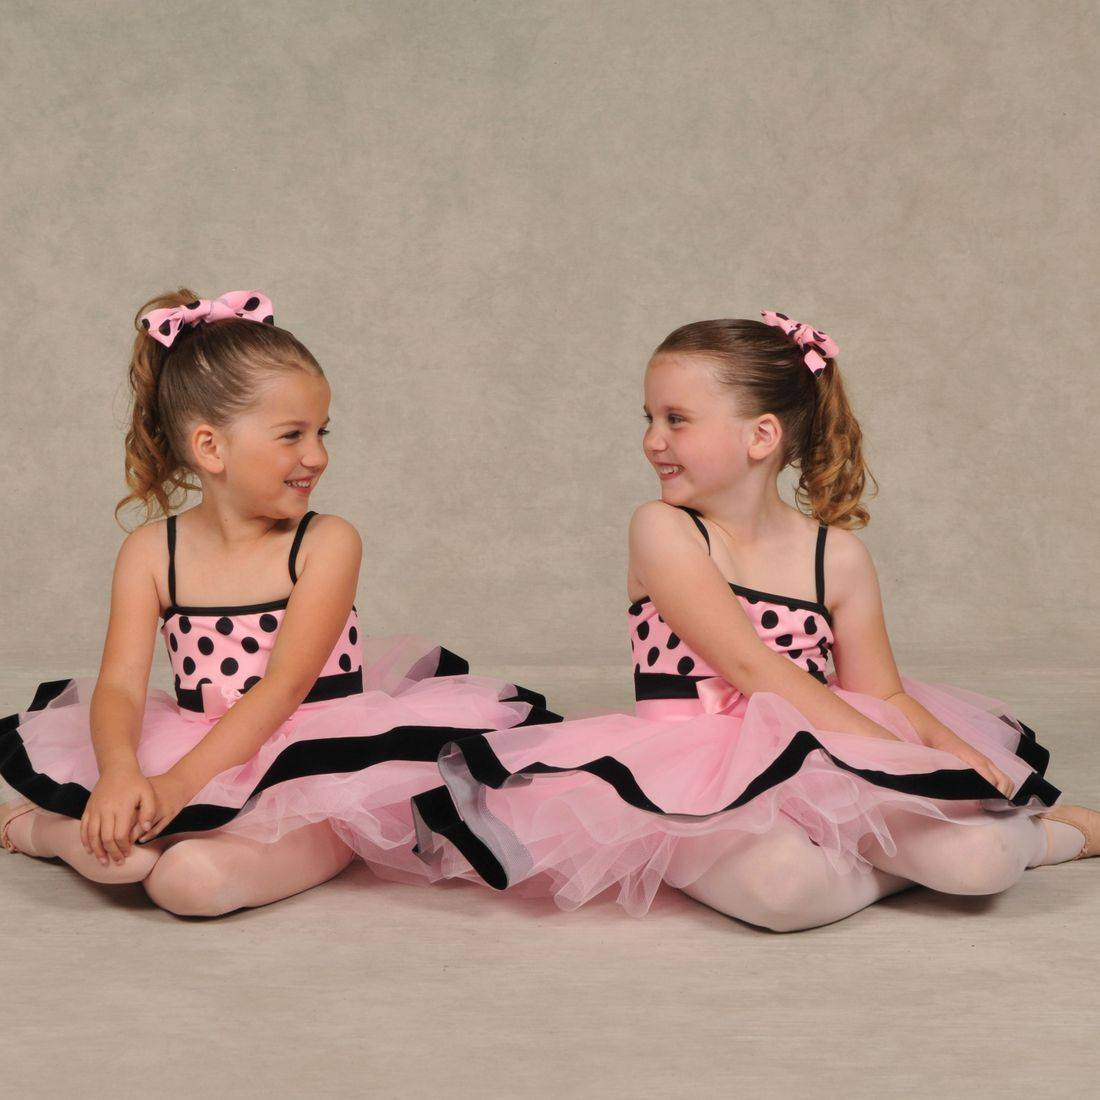 Do you know that we teaching tap dance for children too?  These two were adorable tap dancers a couple years ago!